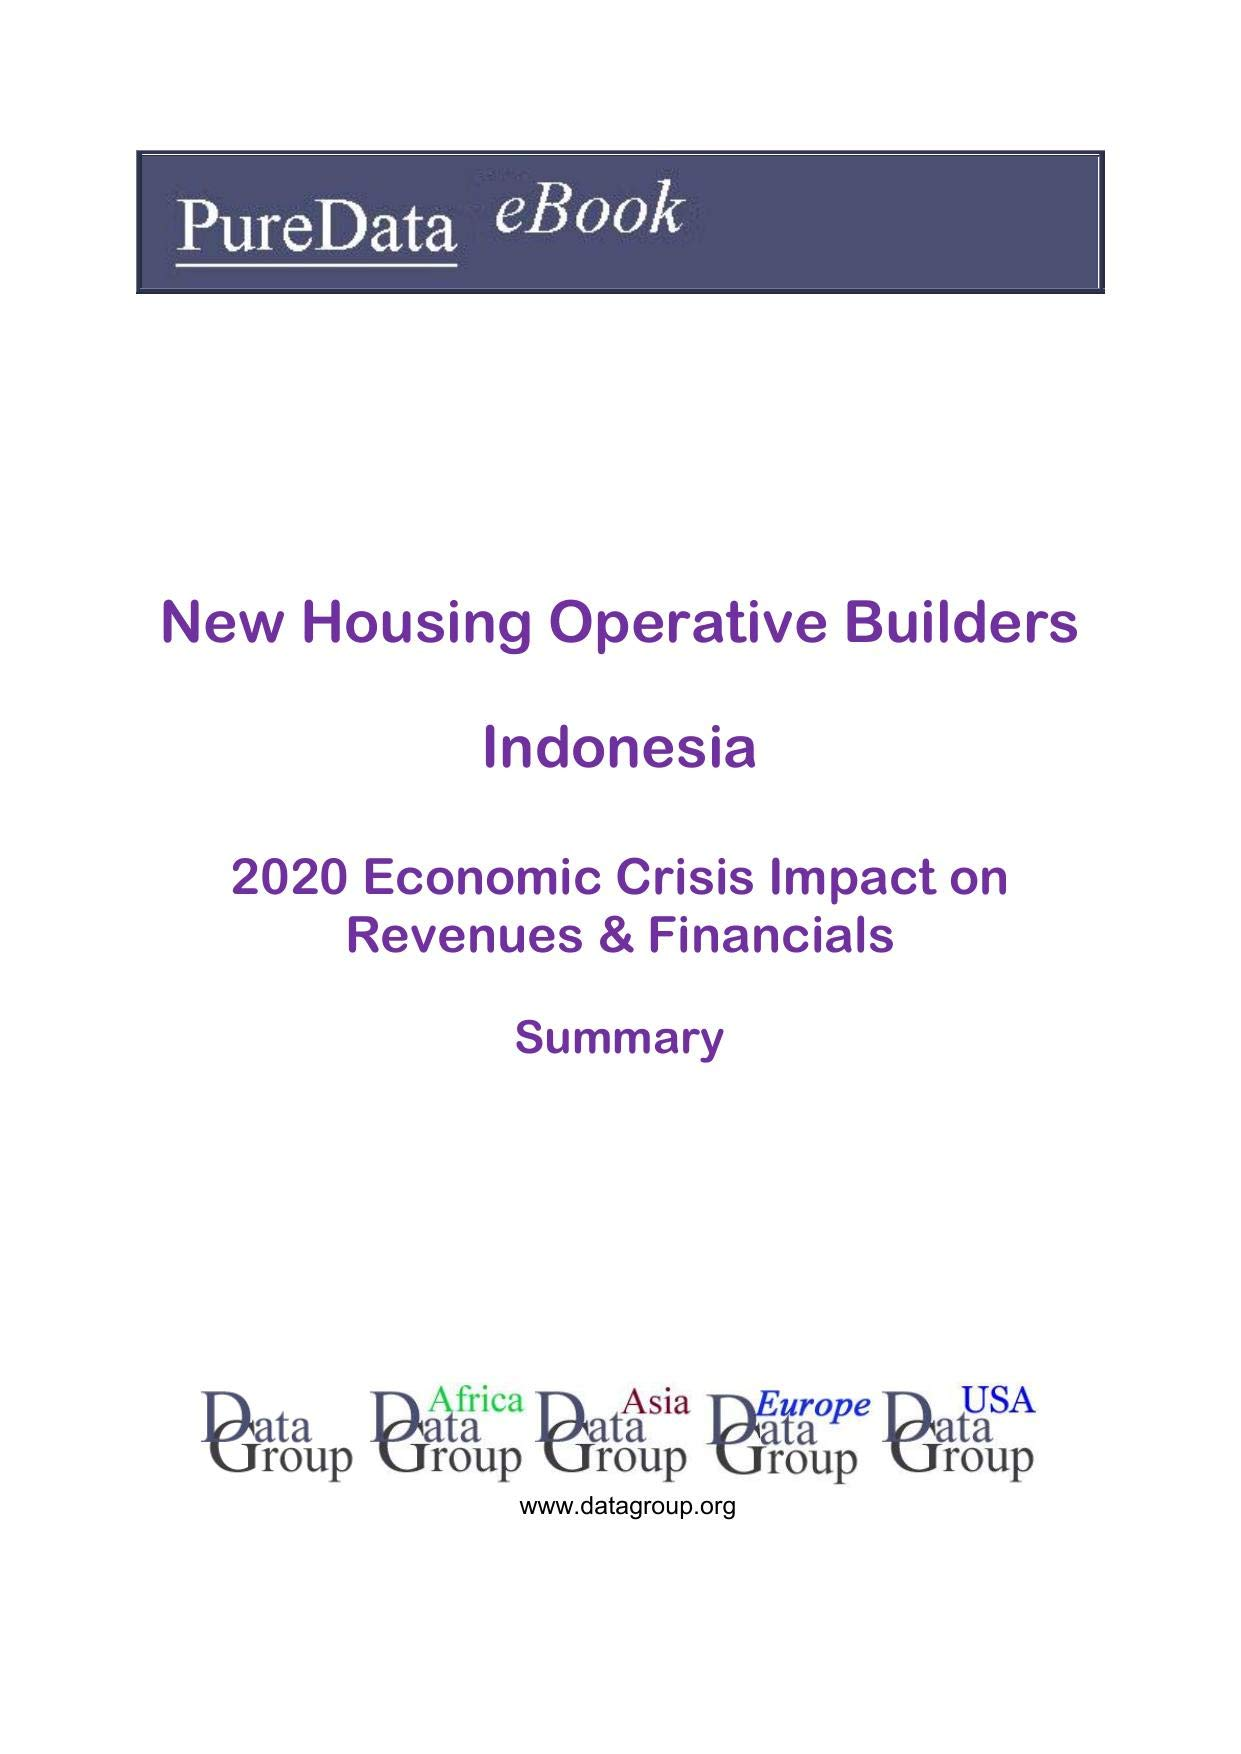 New Housing Operative Builders Indonesia Summary: 2020 Economic Crisis Impact on Revenues & Financials